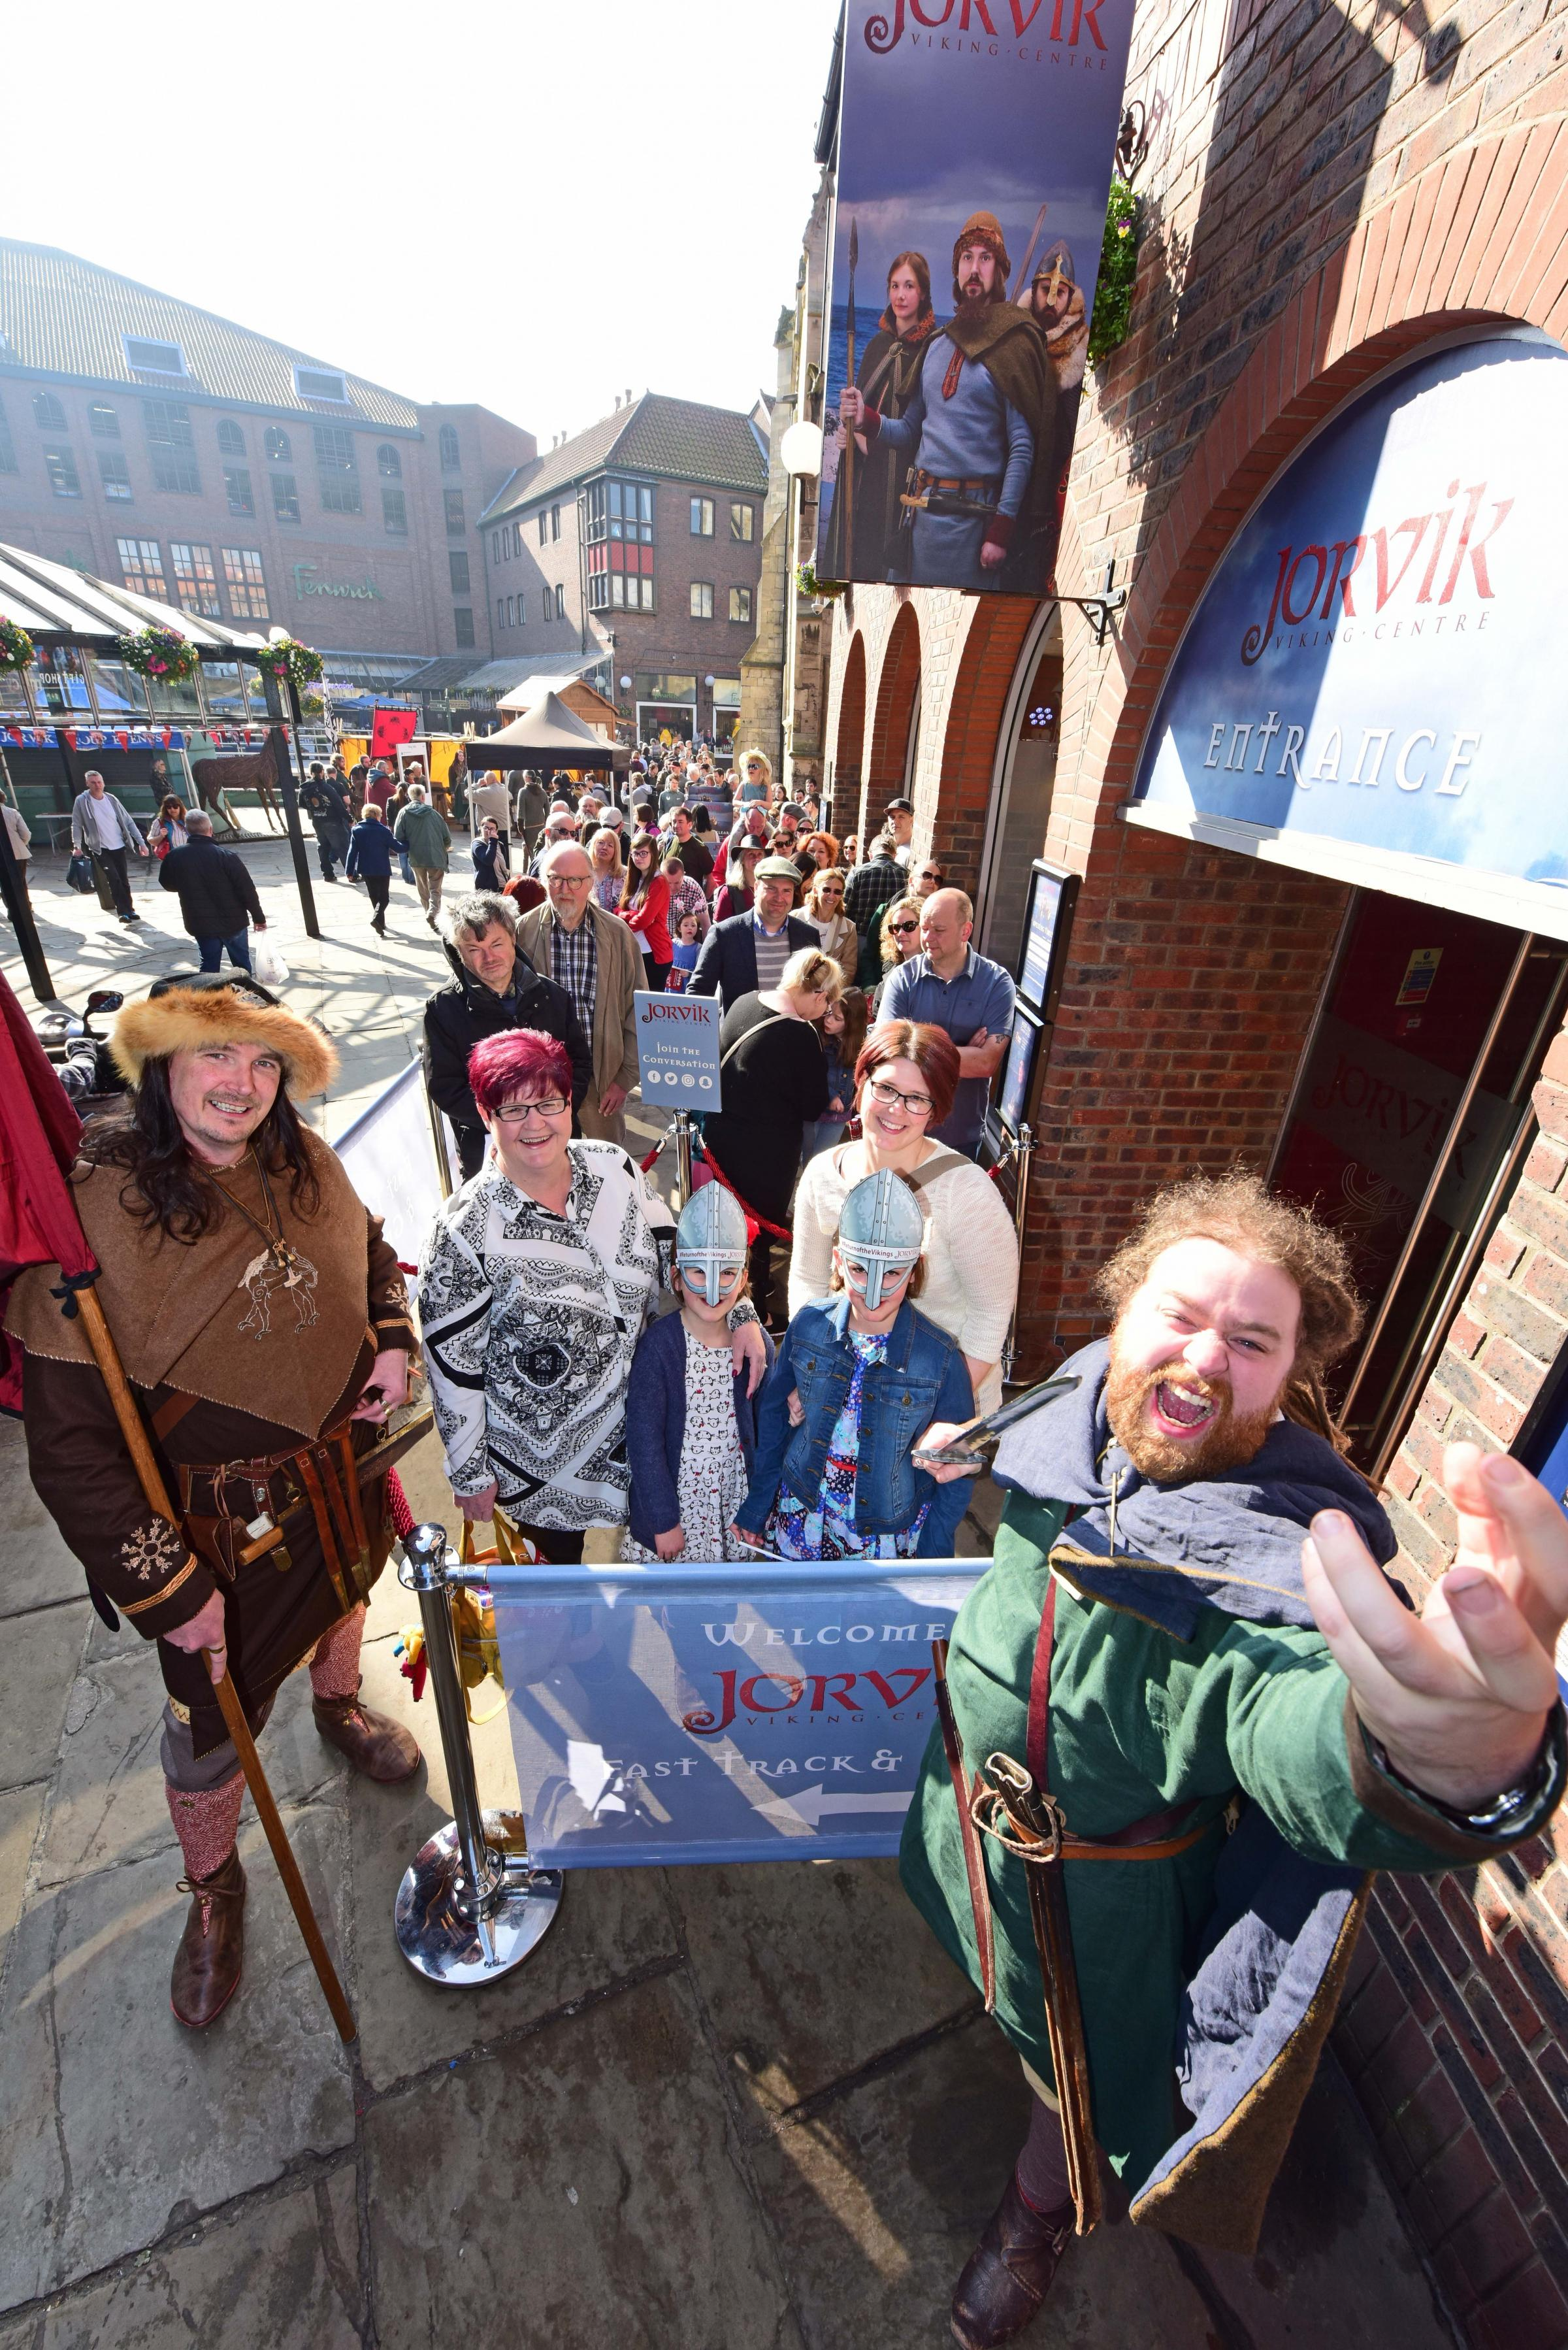 Crowds gathering outside the newly re-opened JORVIK Viking Centre showing the success of the Return of the Vikings campaign